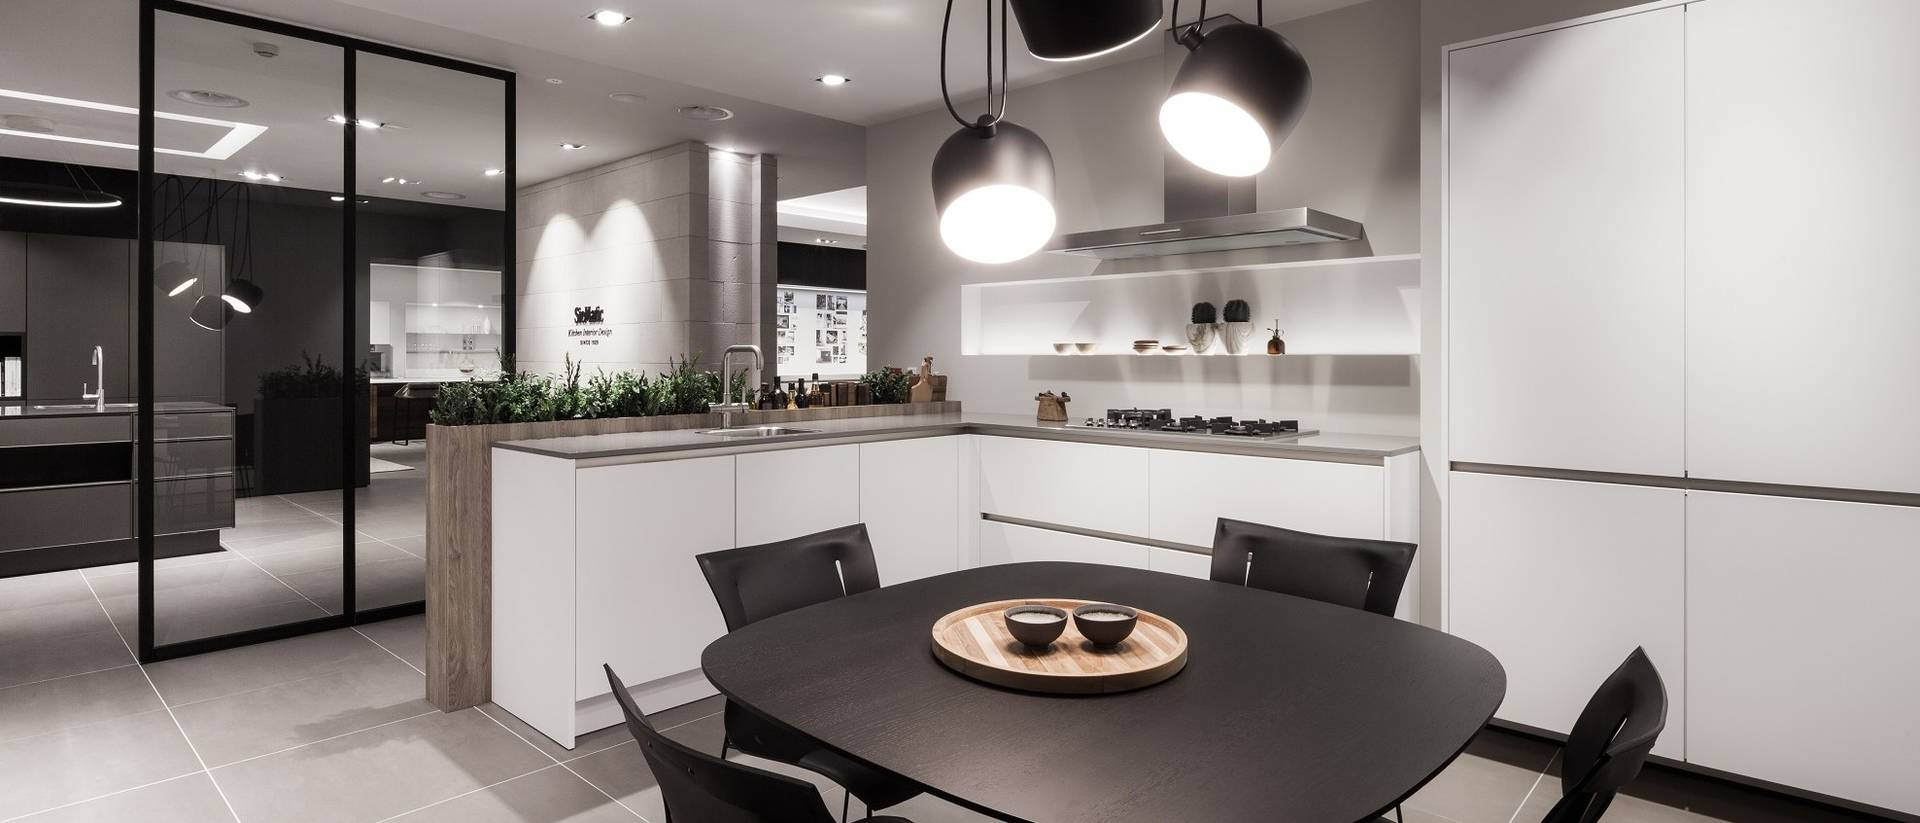 SieMatic kitchen showrooms  Find inspiration in individualized SieMatic  kitchen design  SieMatic Kitchen Studios  Experts in kitchen design. Siematic Kitchen Designs. Home Design Ideas